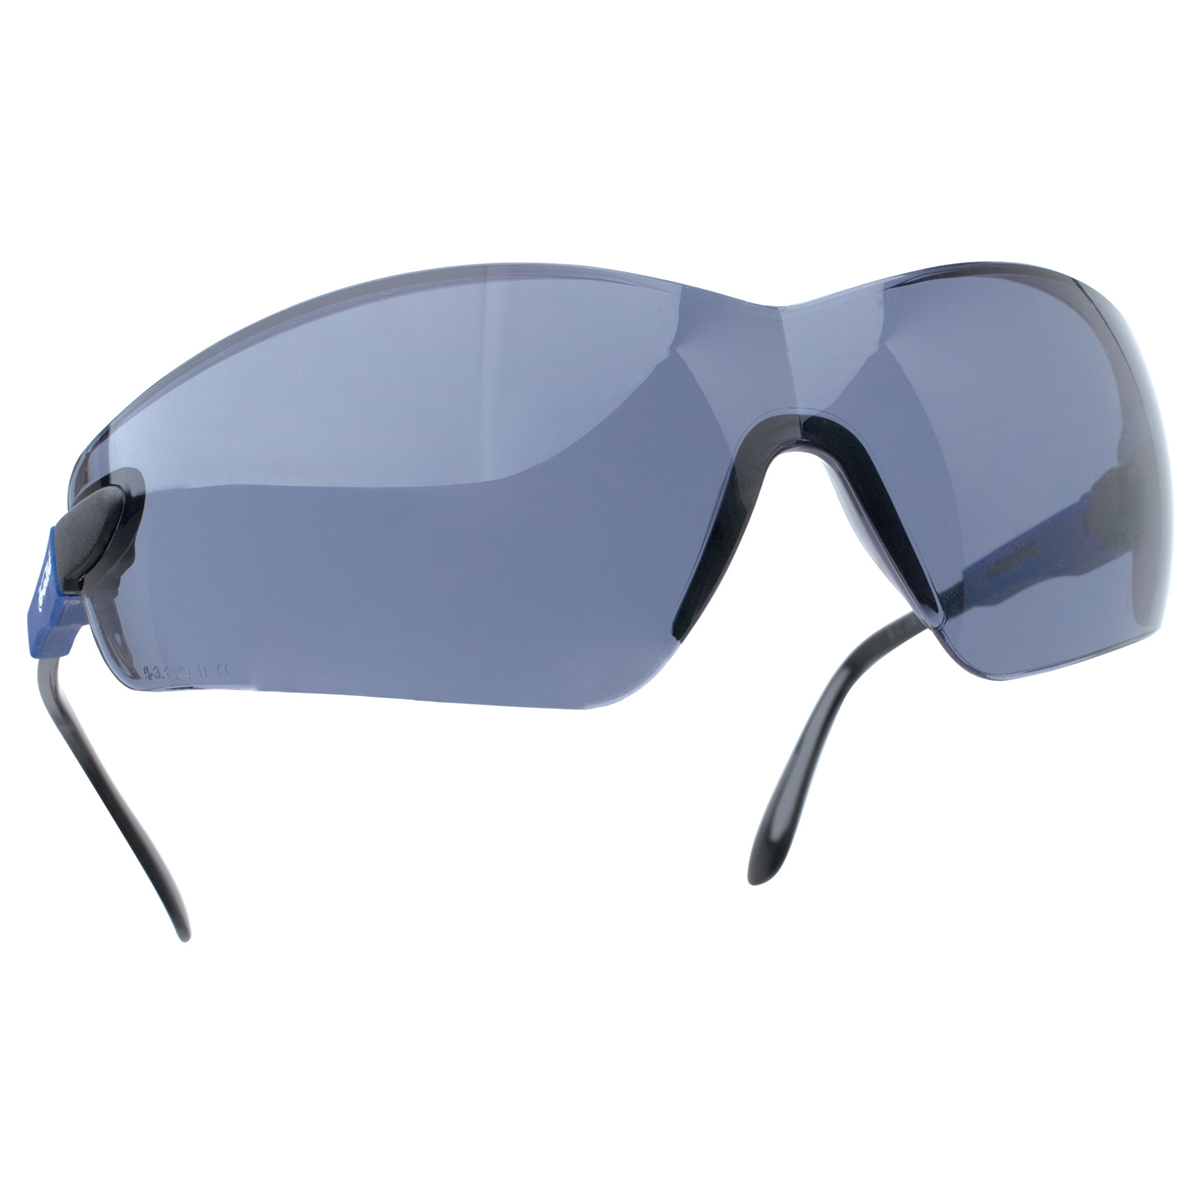 Bollé-Viper Safety Glasses